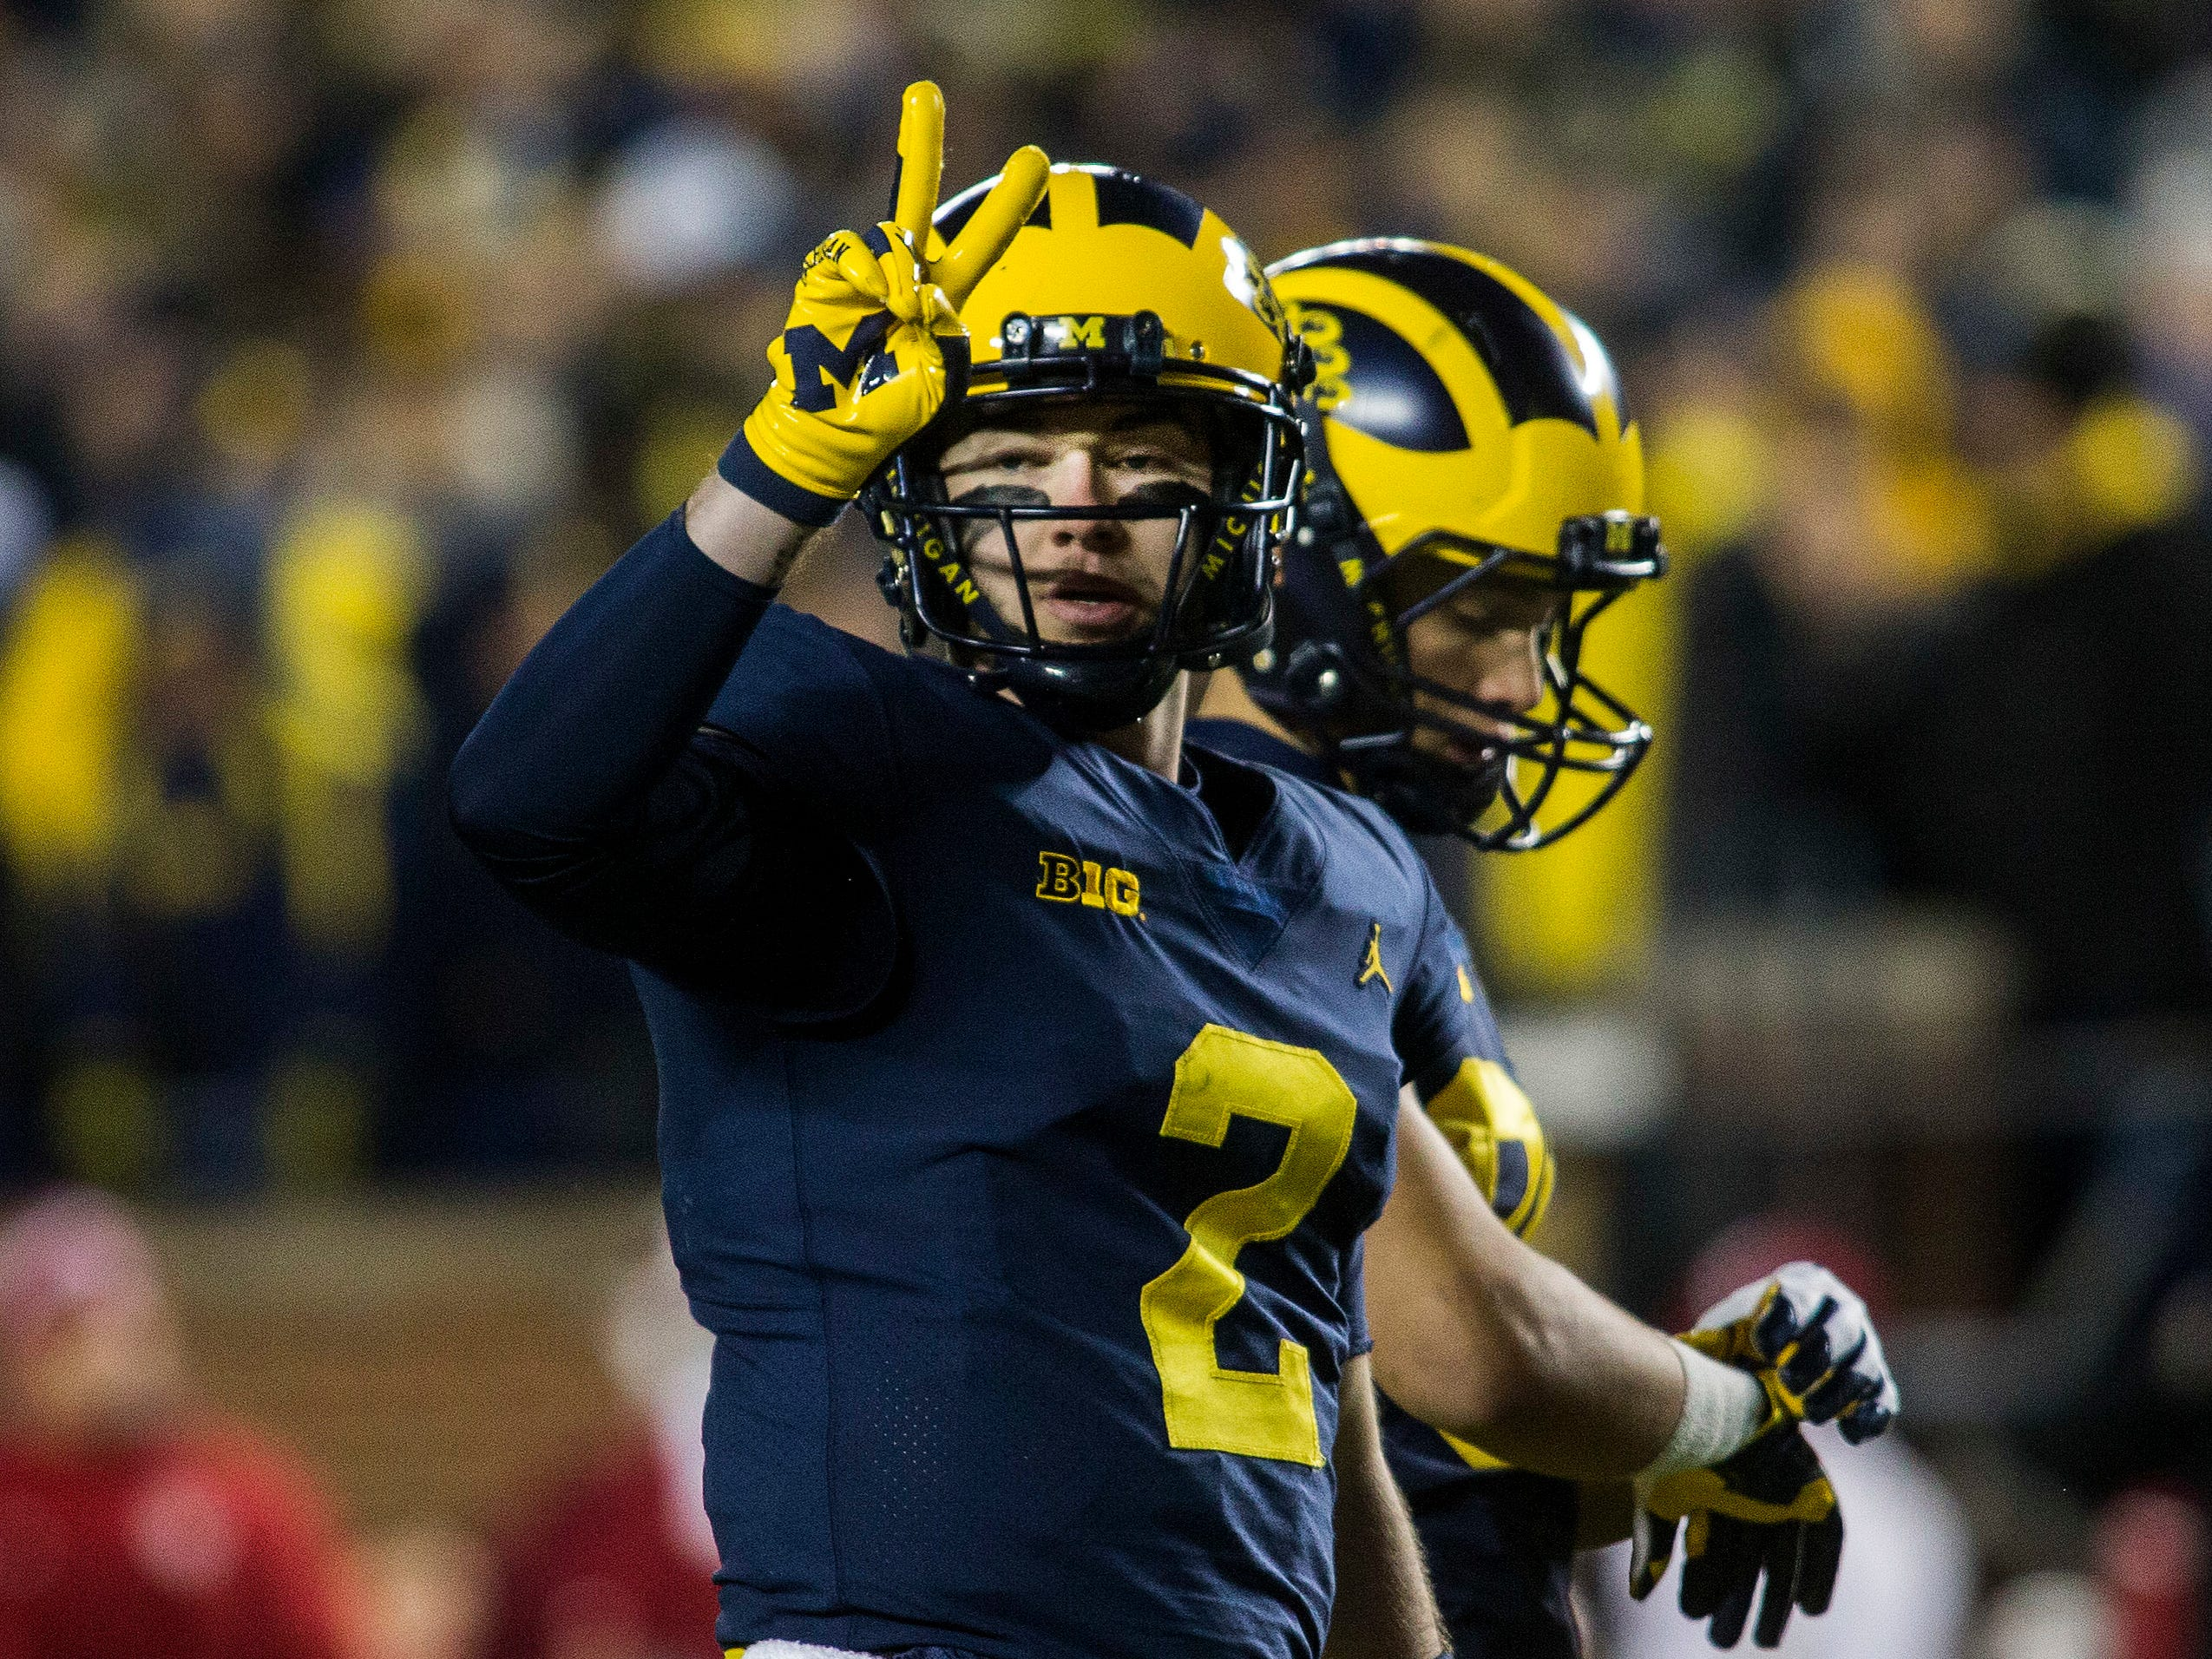 Niyo: Finally, it's 'on to the big game' for Michigan